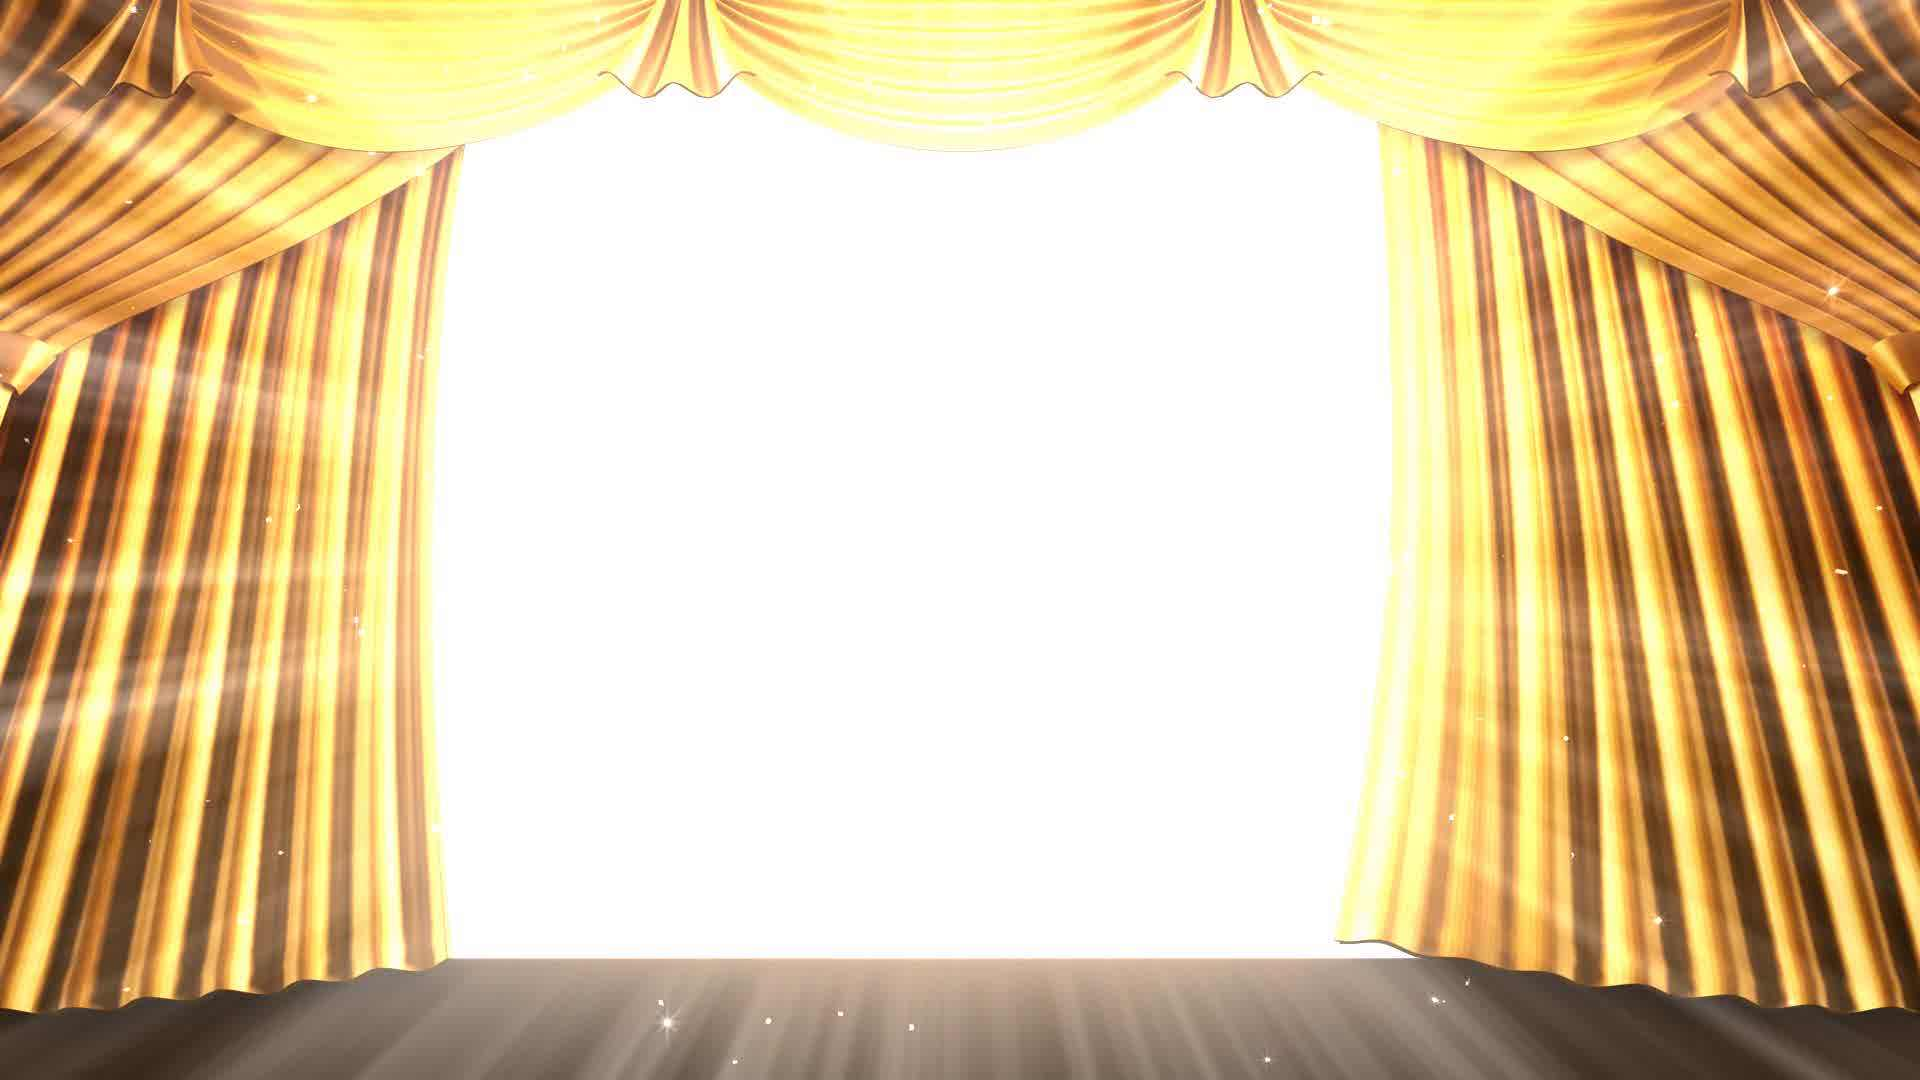 Real Open Stage Curtains Free Image